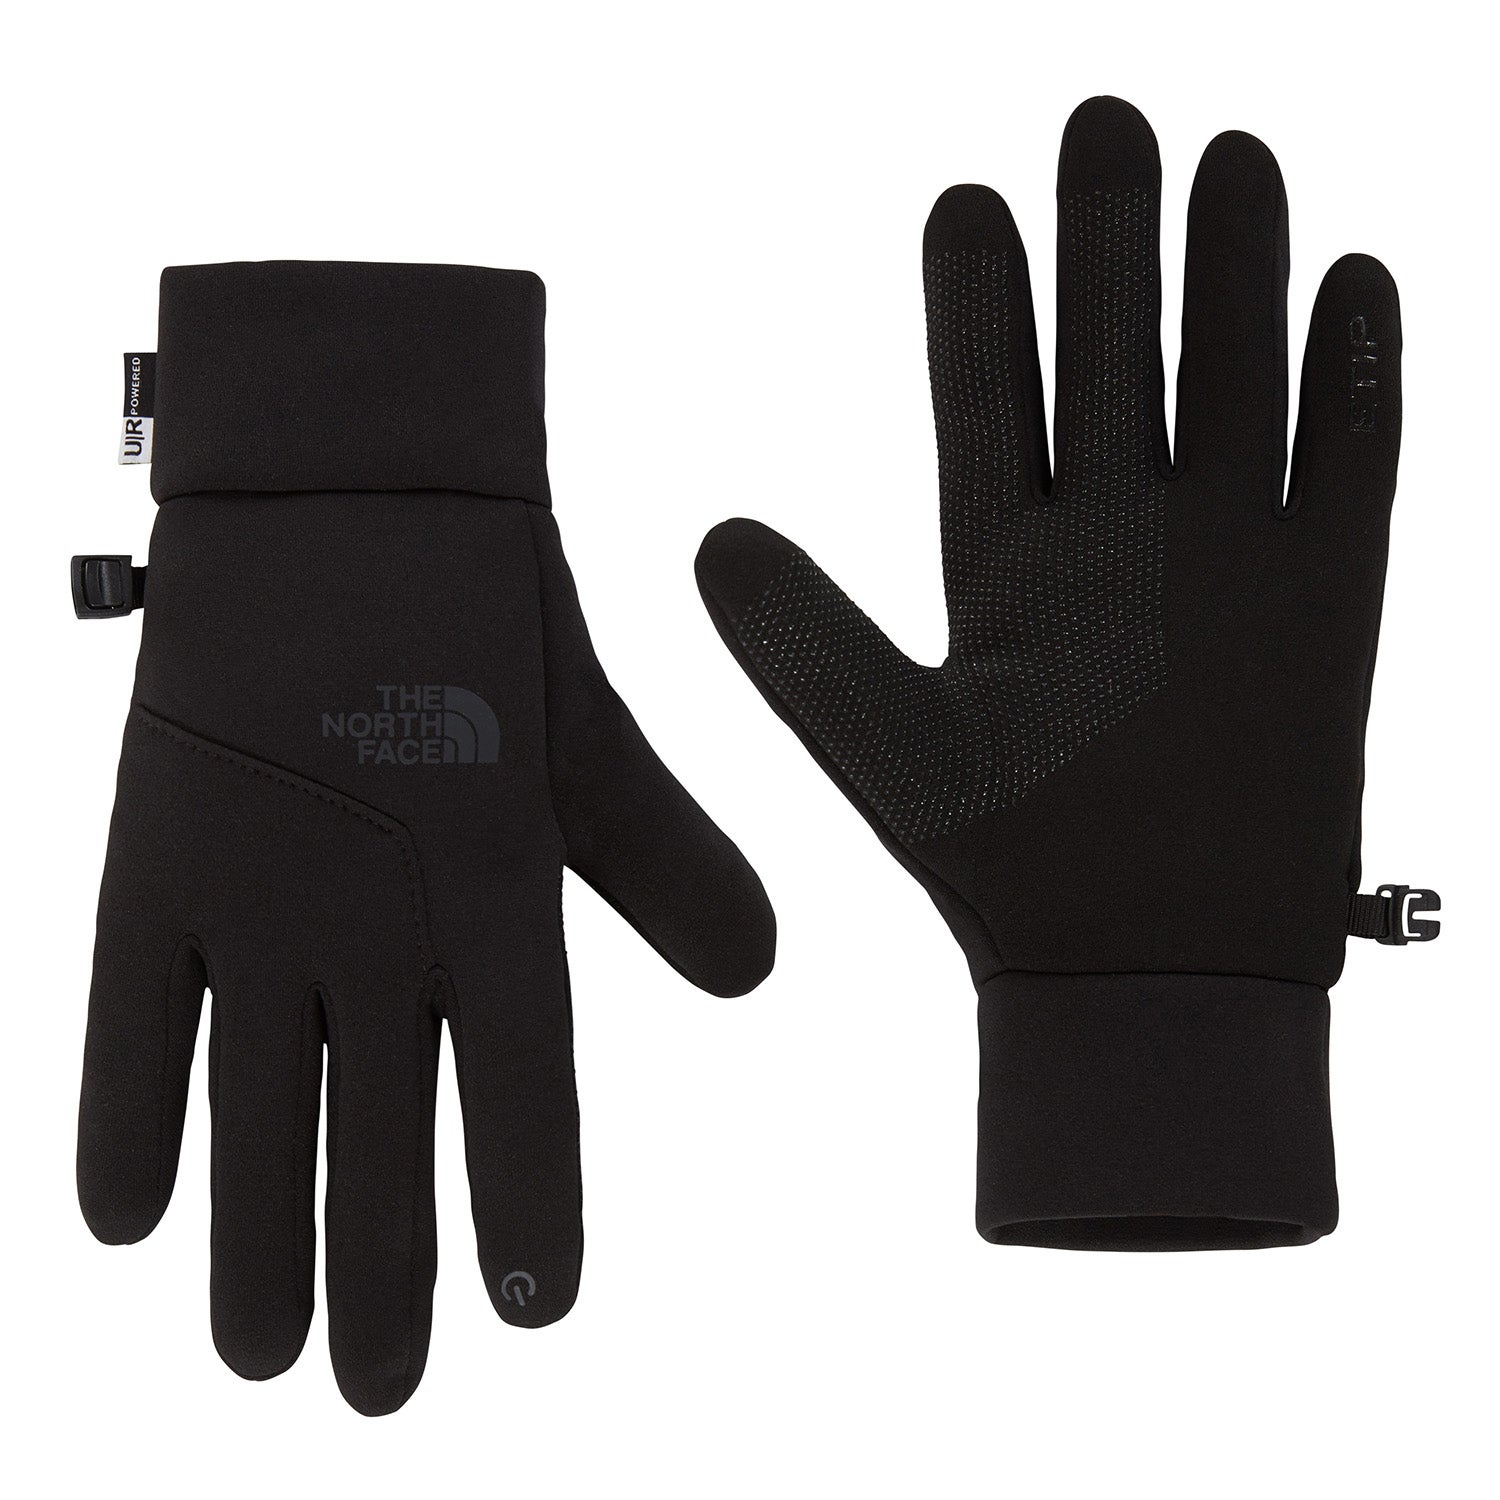 b117473c2 North Face ETIP Gloves available from Blackleaf